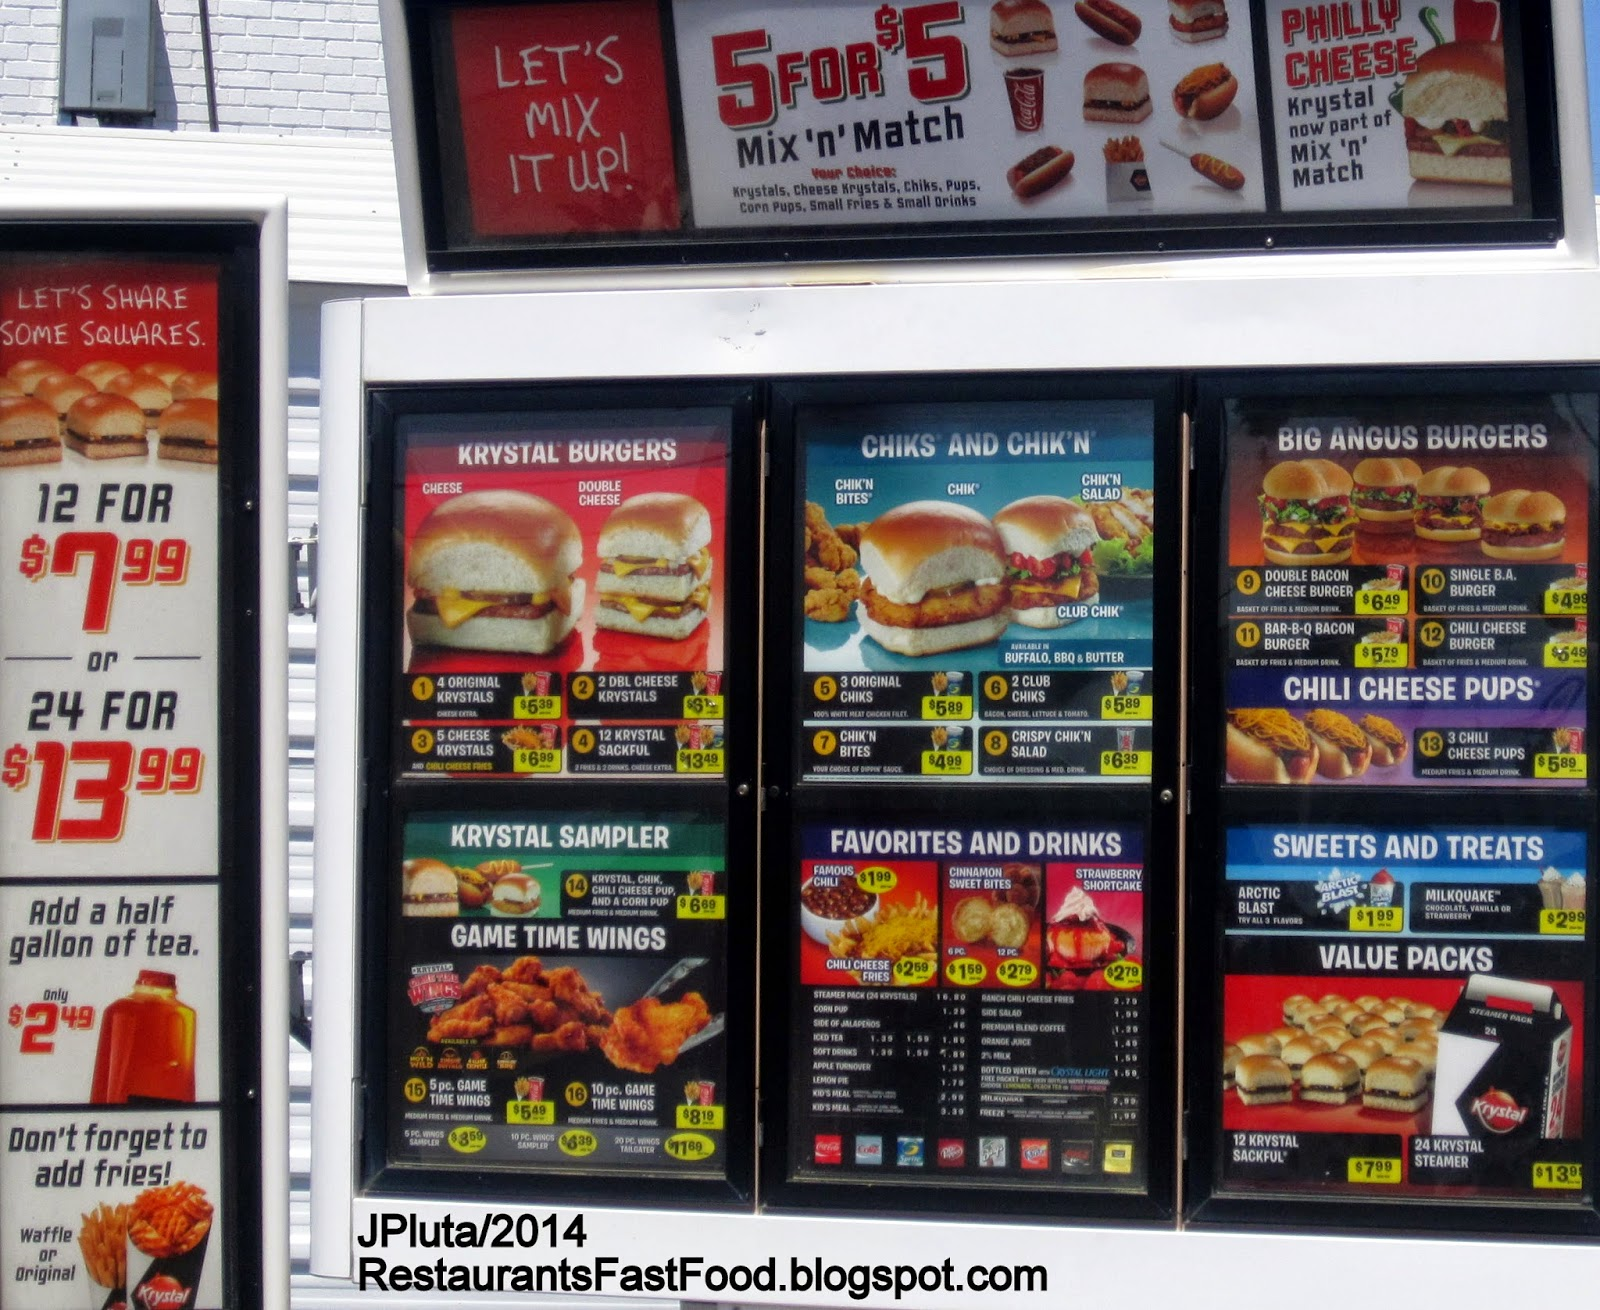 ViewStation Outdoor Digital Menu Boards Image Gallery as well Burger king drive thru also Starbucks Menu Prices 2015 further In t menu board feat also Drive Thru Products. on drive thru digital menu boards